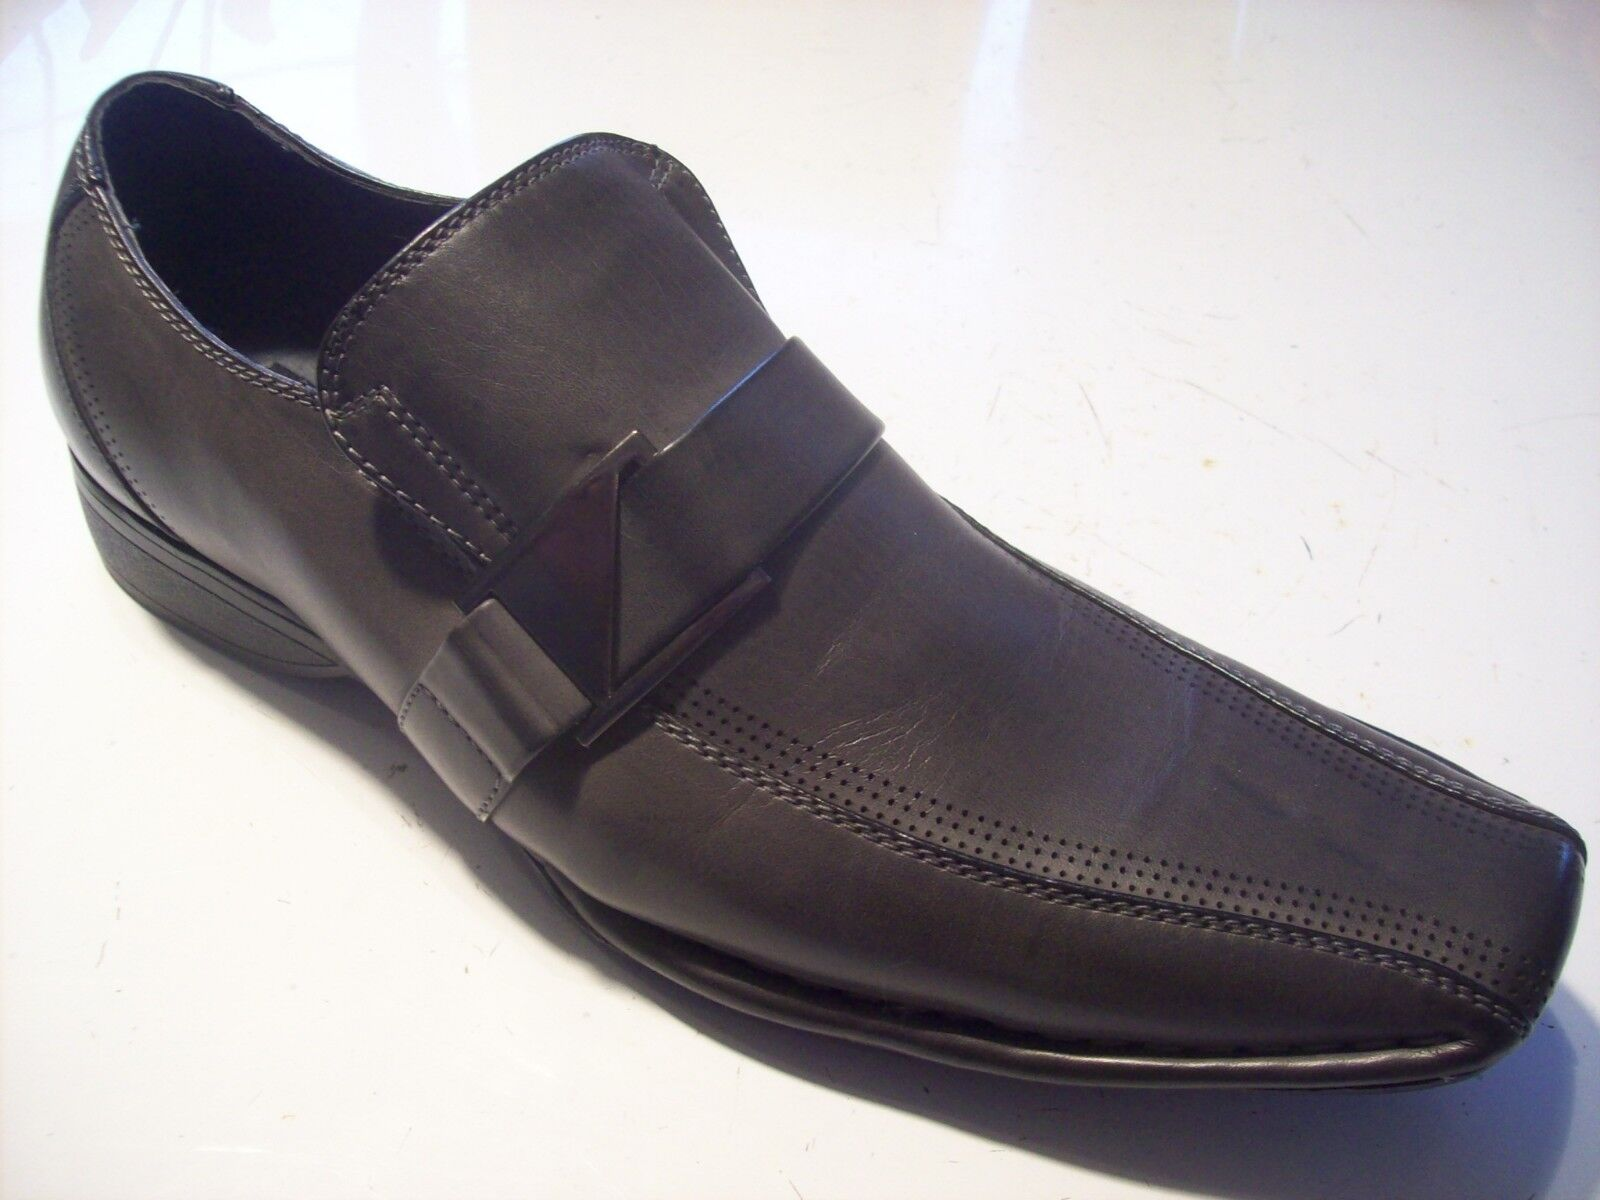 Madden Rockir 9 Gray Leather Loafers Oxfords Mens Shoes Size 9 Rockir 9.5 @ cLOSeT f504d7